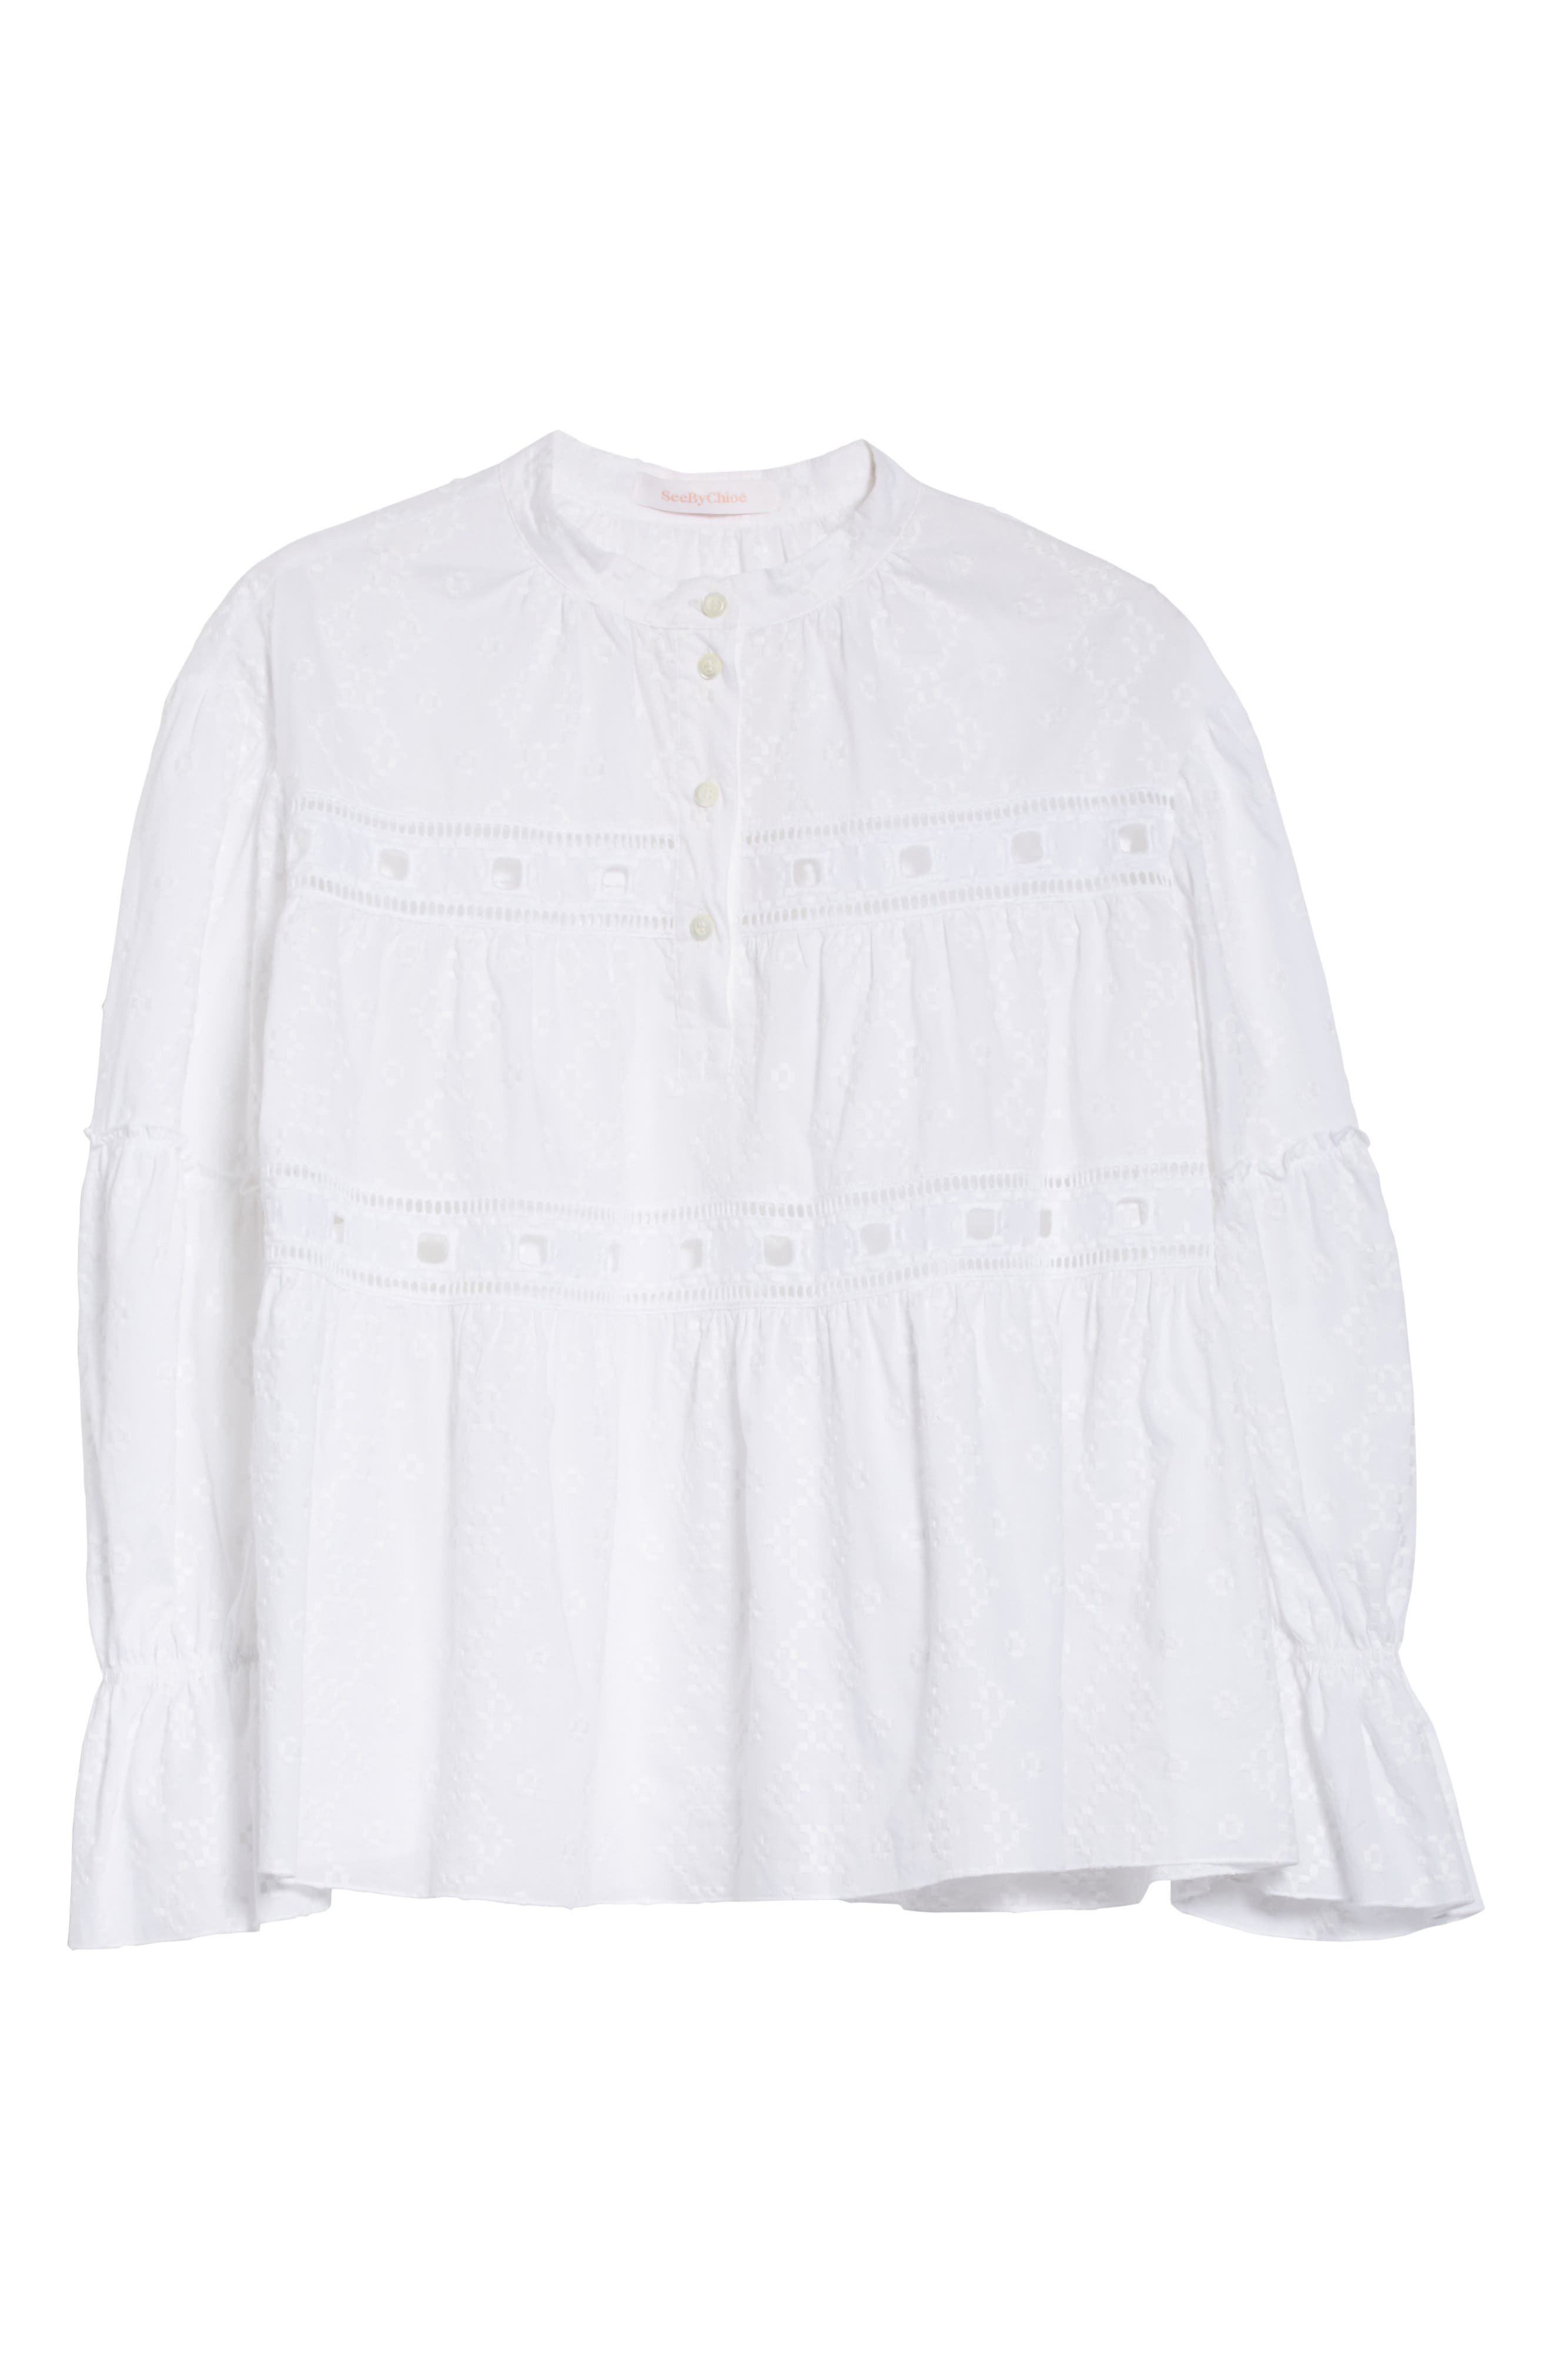 Embroidered Eyelet Blouse,                             Alternate thumbnail 6, color,                             101